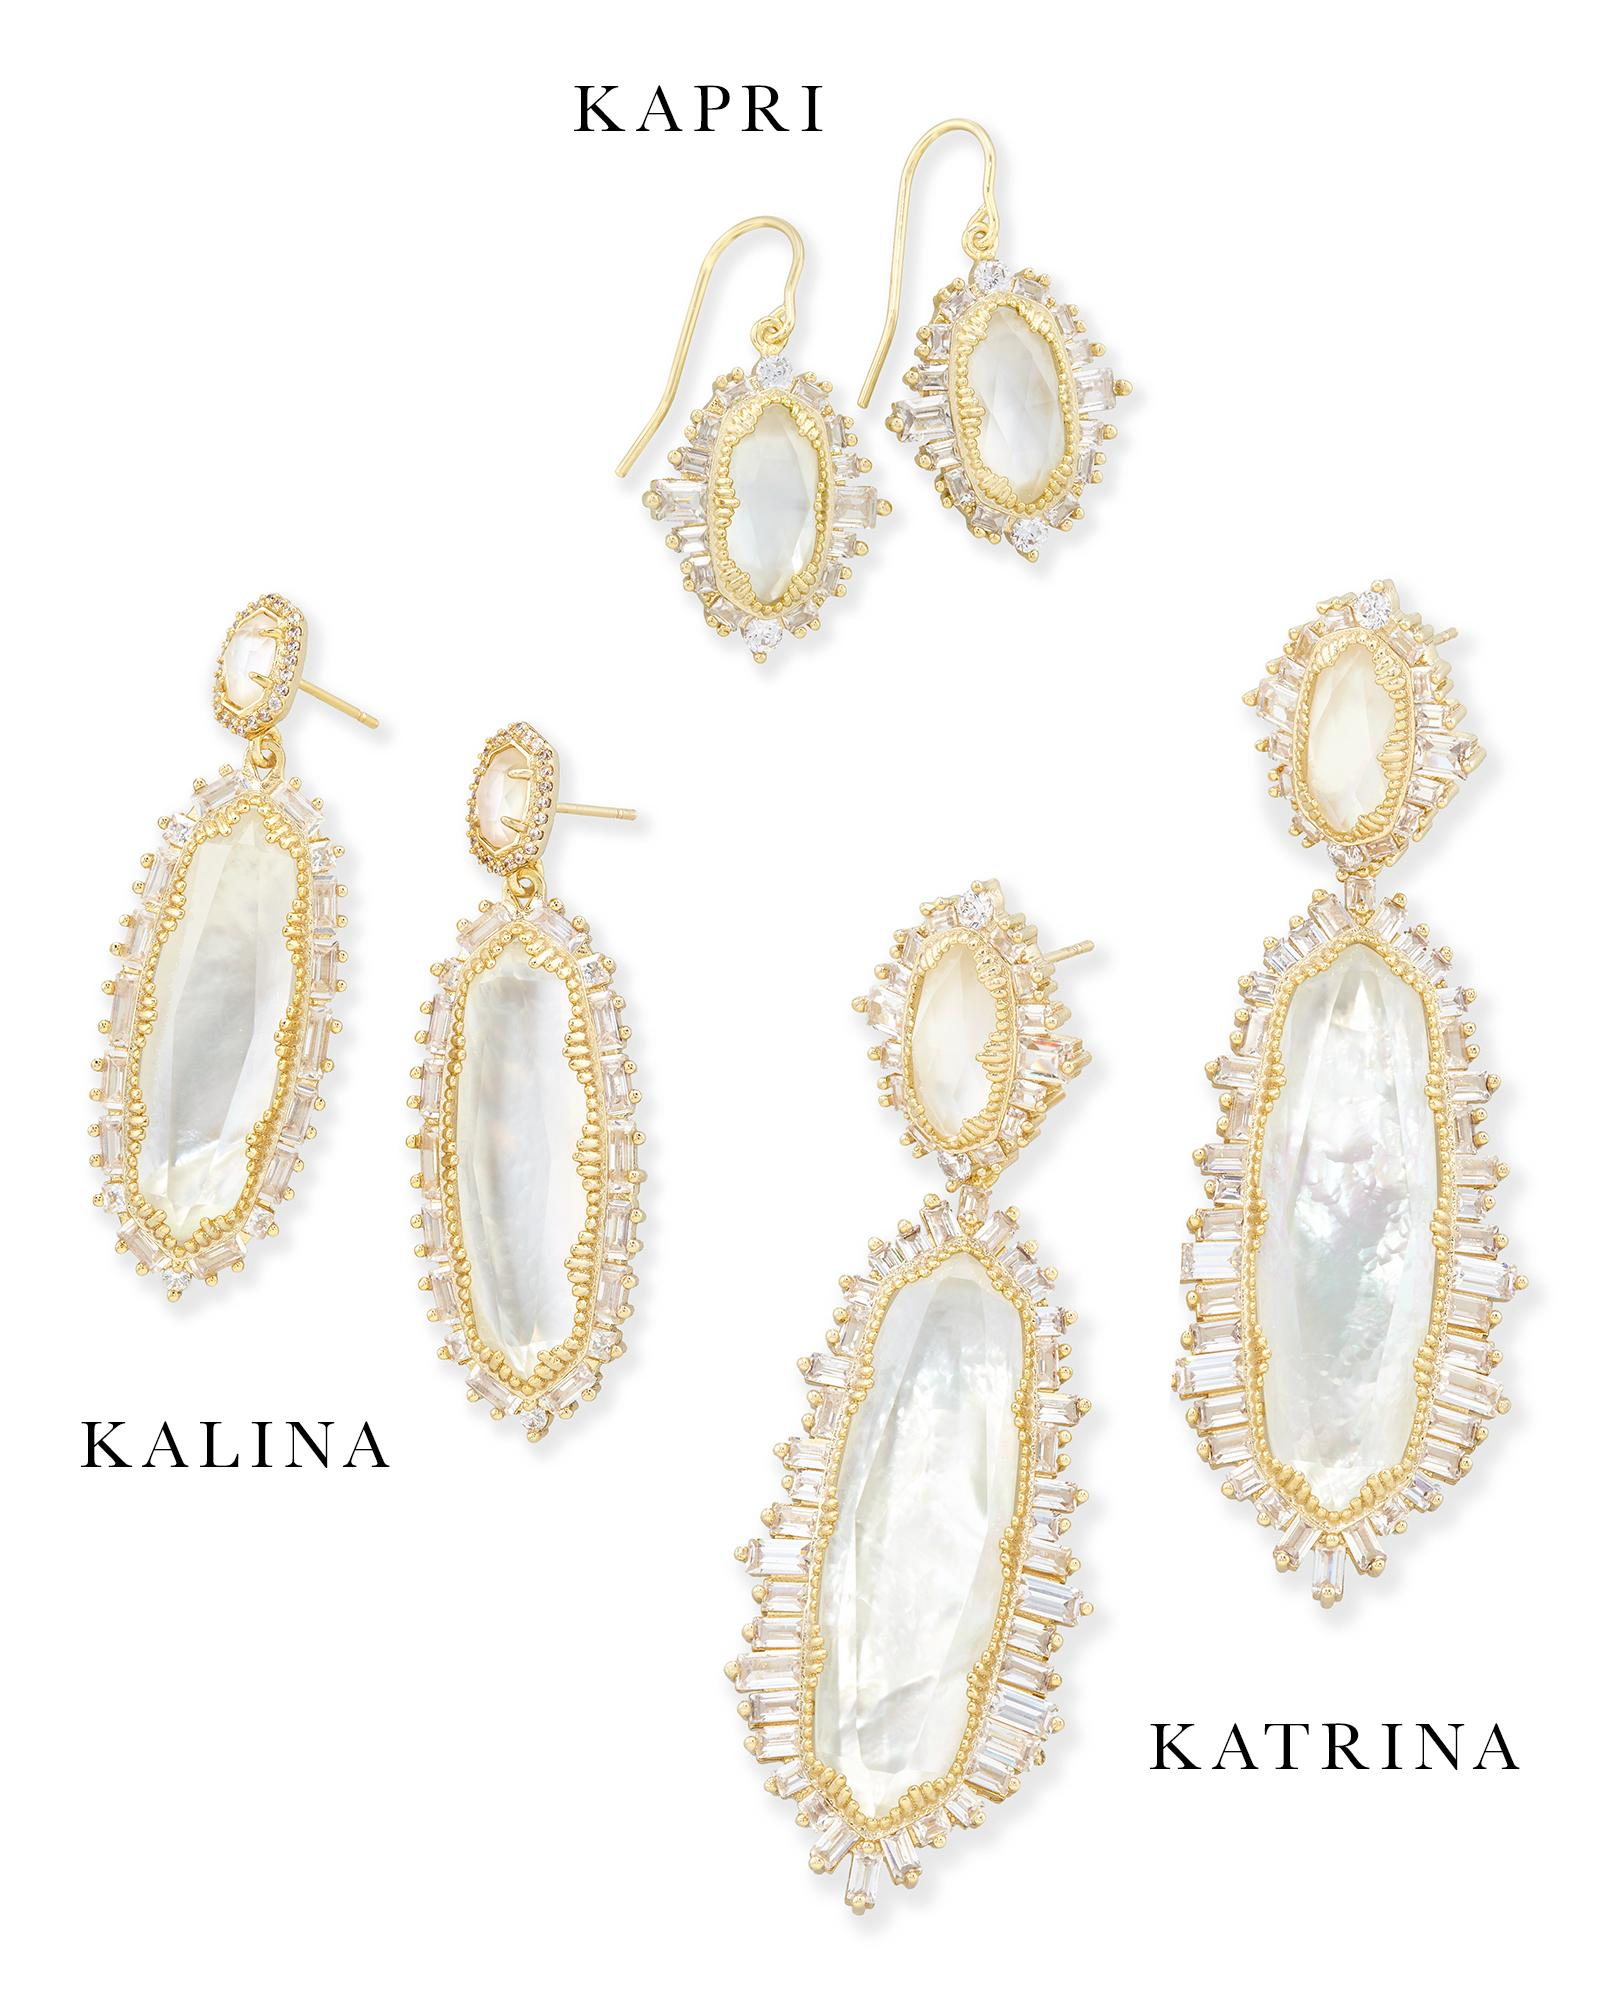 Kalina Statement Earrings in Gold